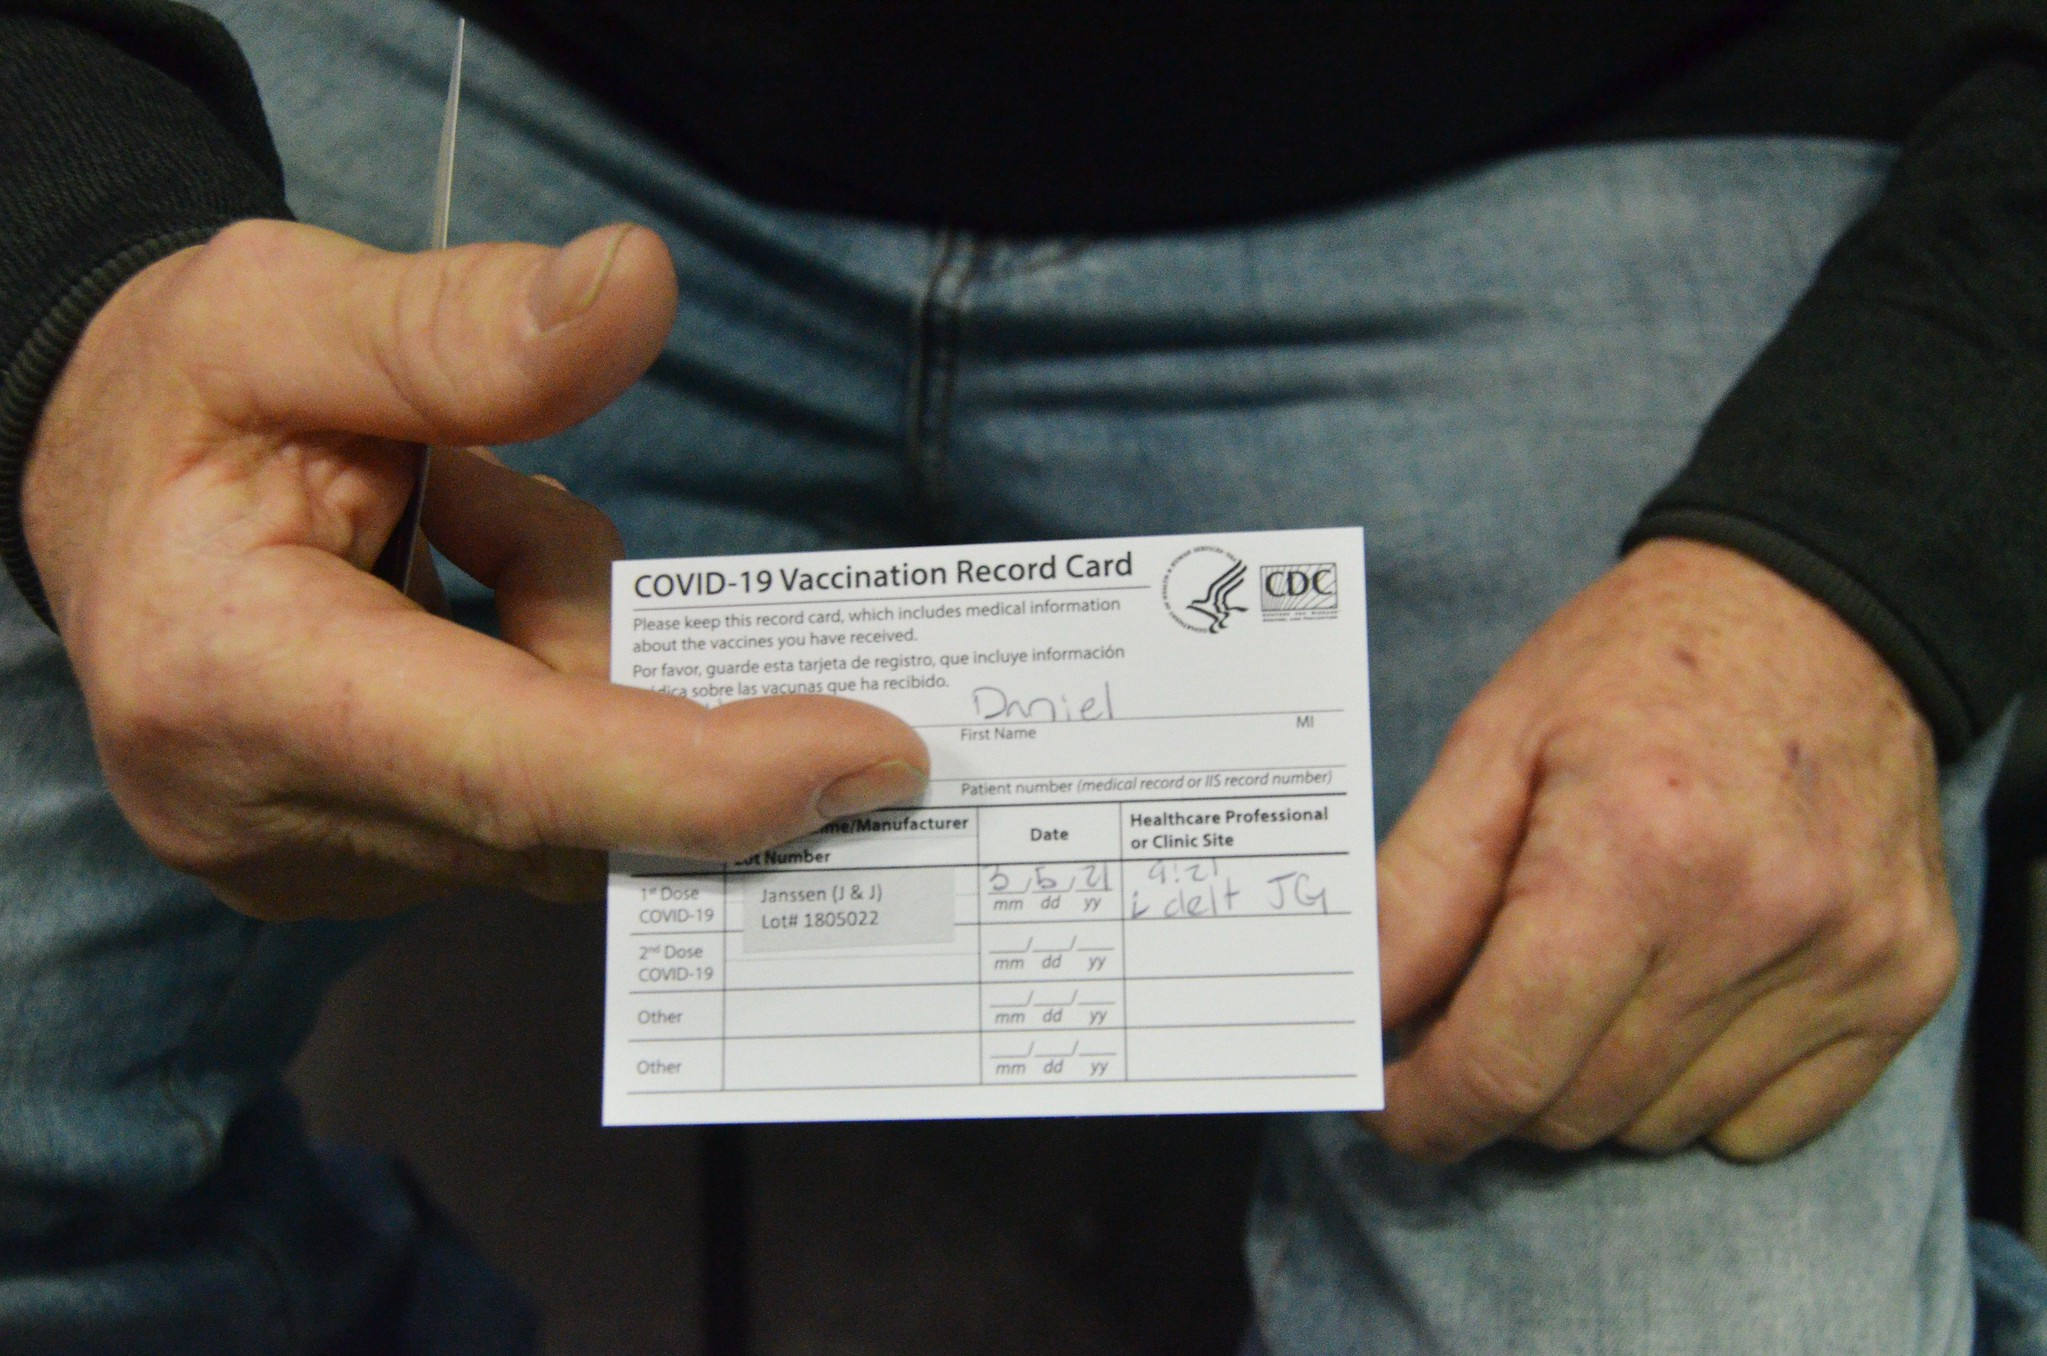 close up photo of man's hands holding vaccine card